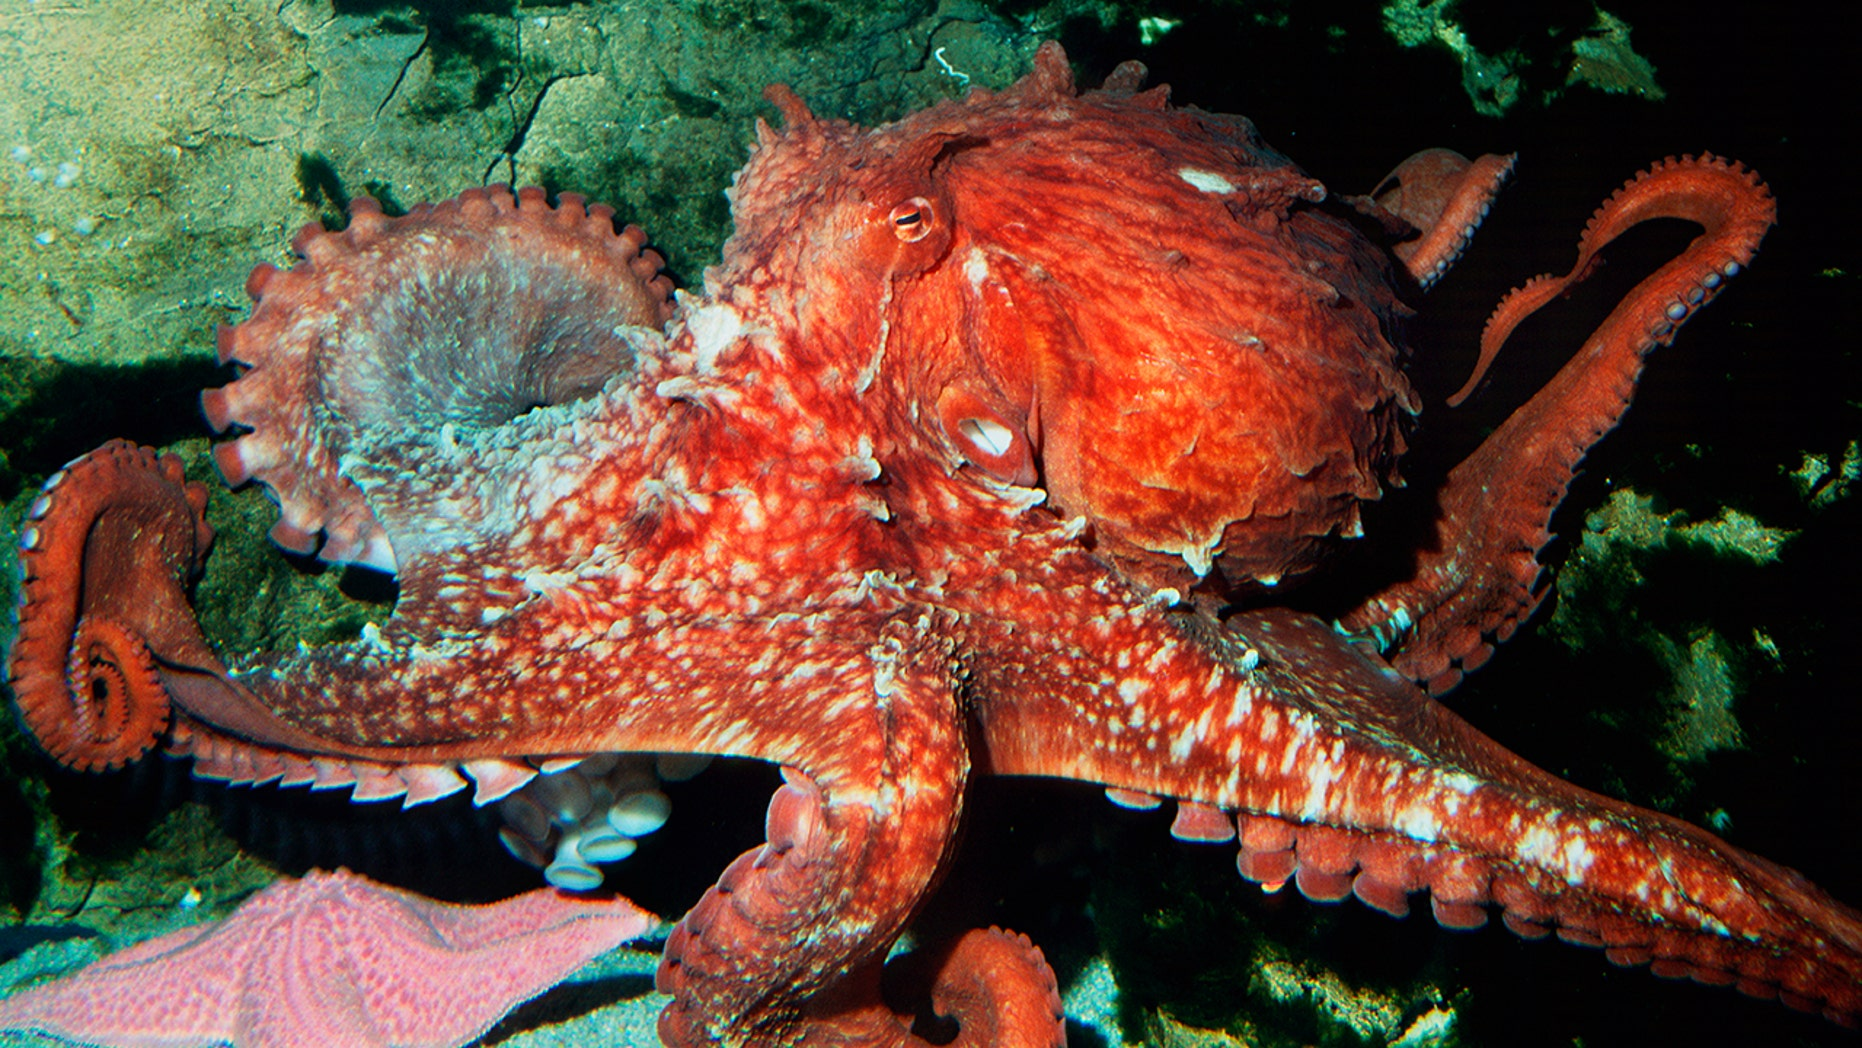 A Giant Pacific octopus, named Rabiot, correctly 'predicted' two of Japan's World Cup results before he was sent to the market.